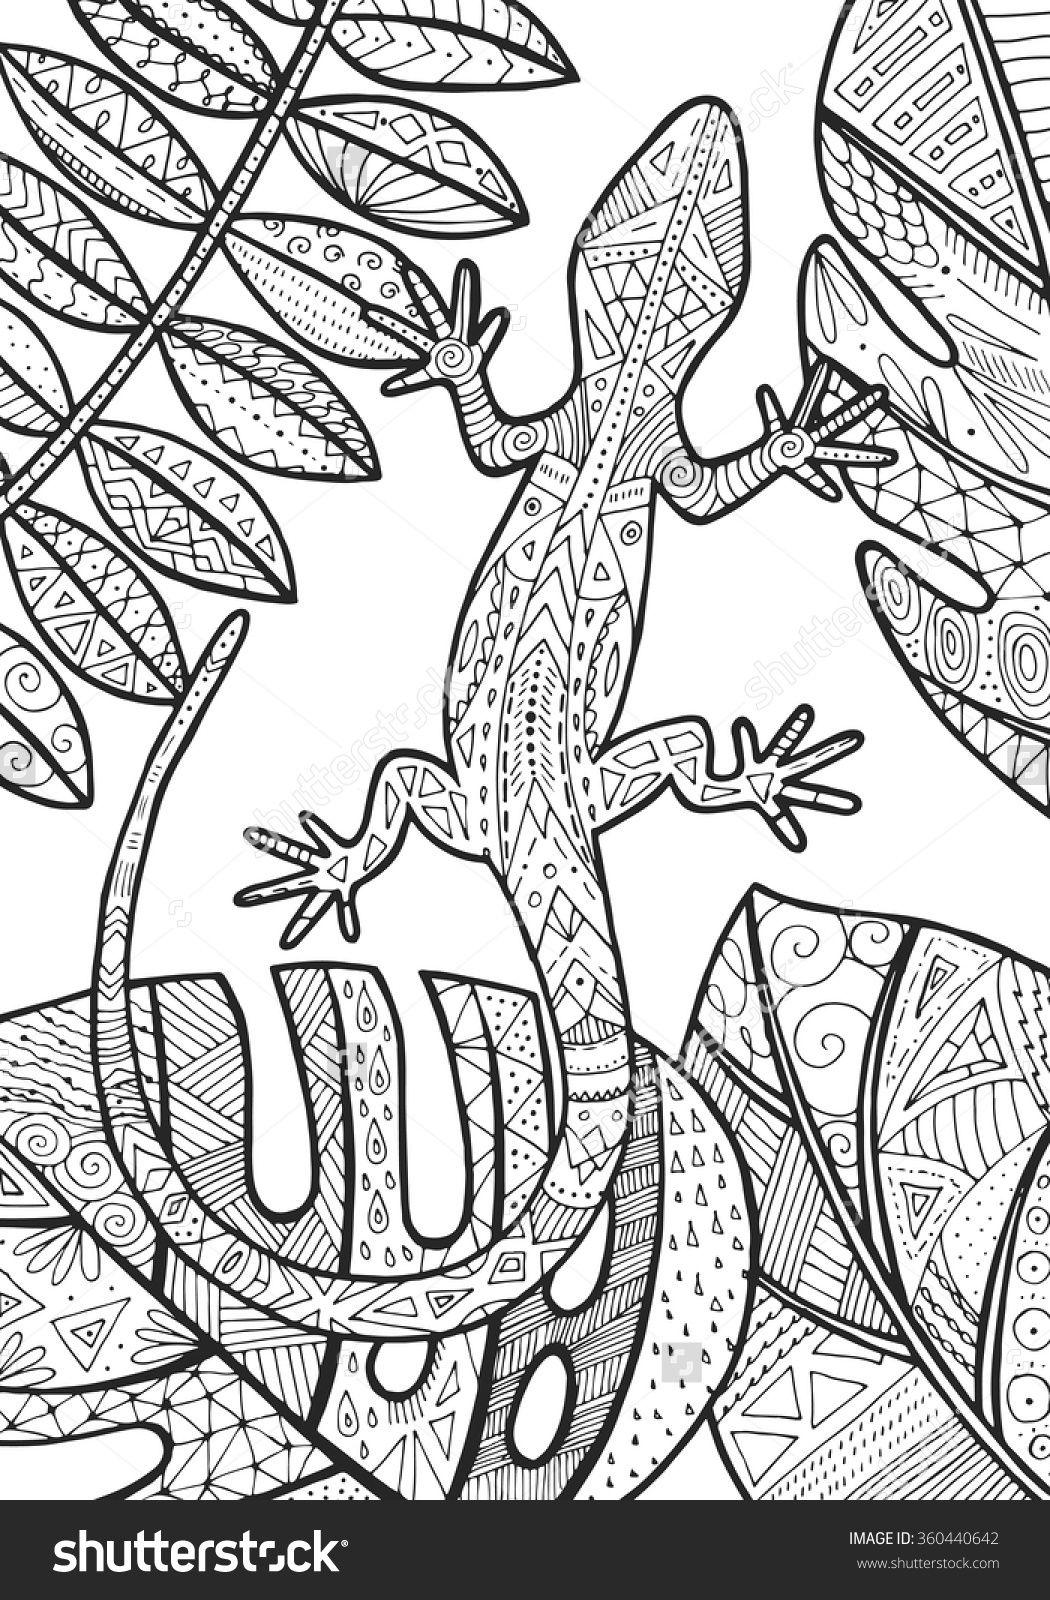 Lizard Tropical Illustration For Adult Coloring Coloring Pages